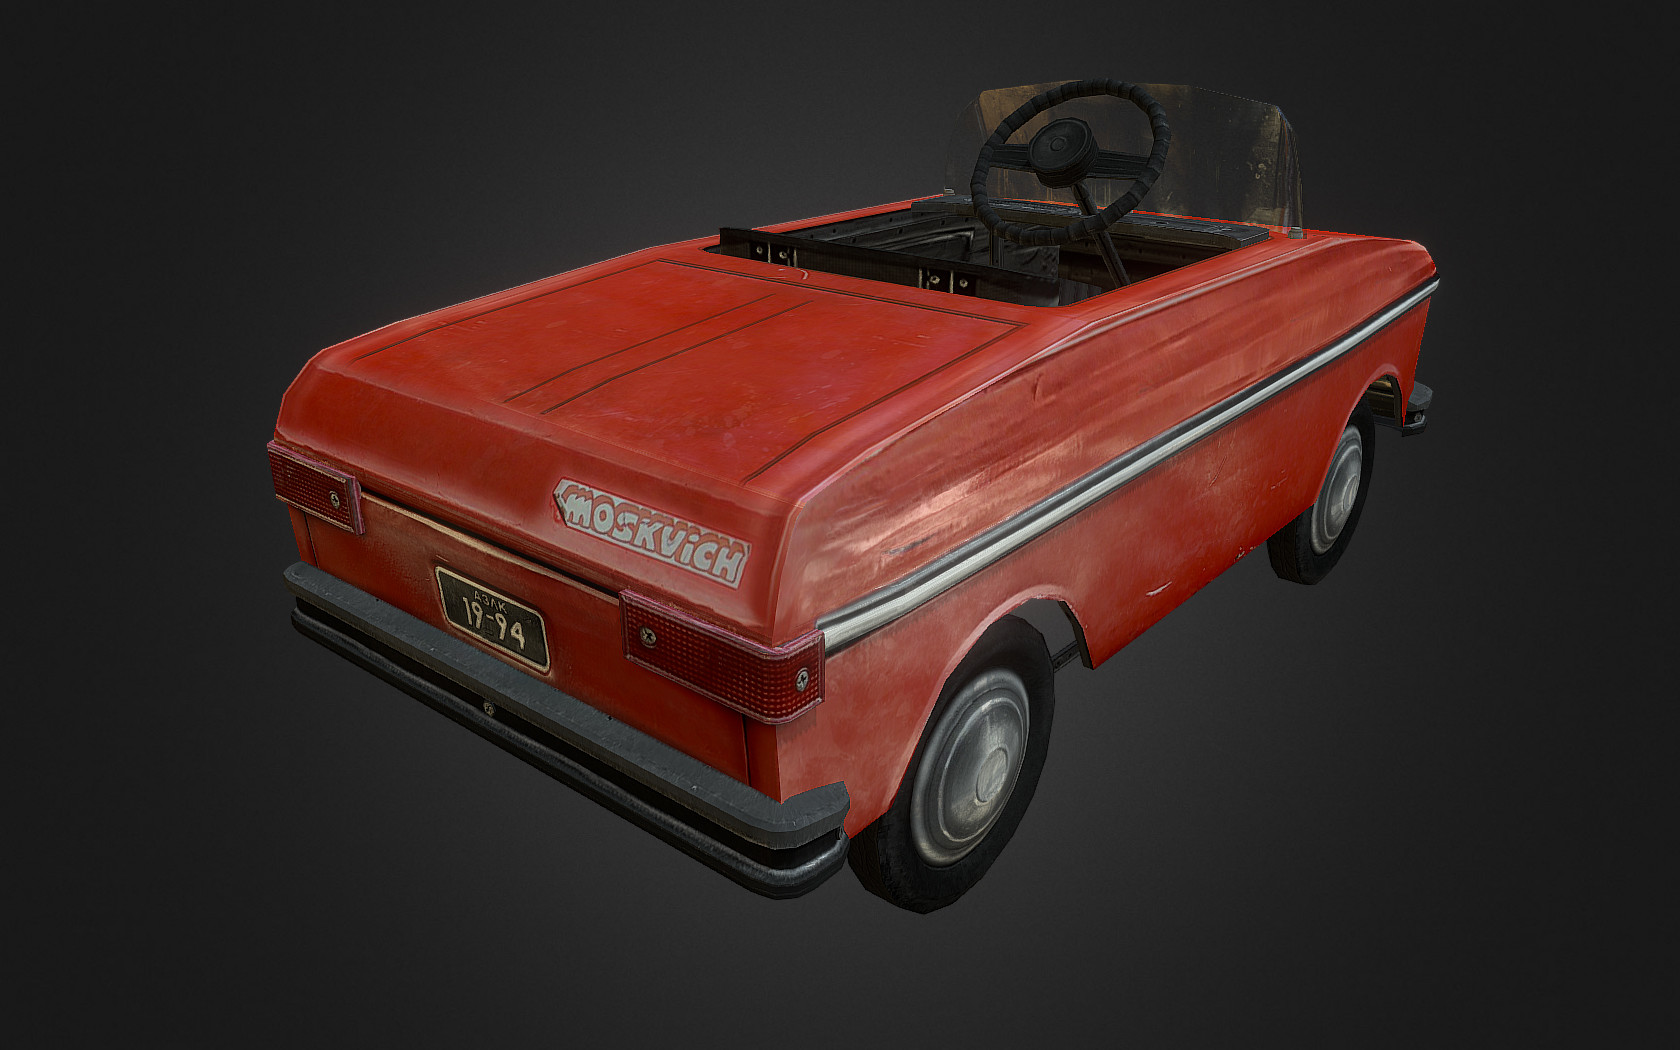 Moskvich Pedal Car